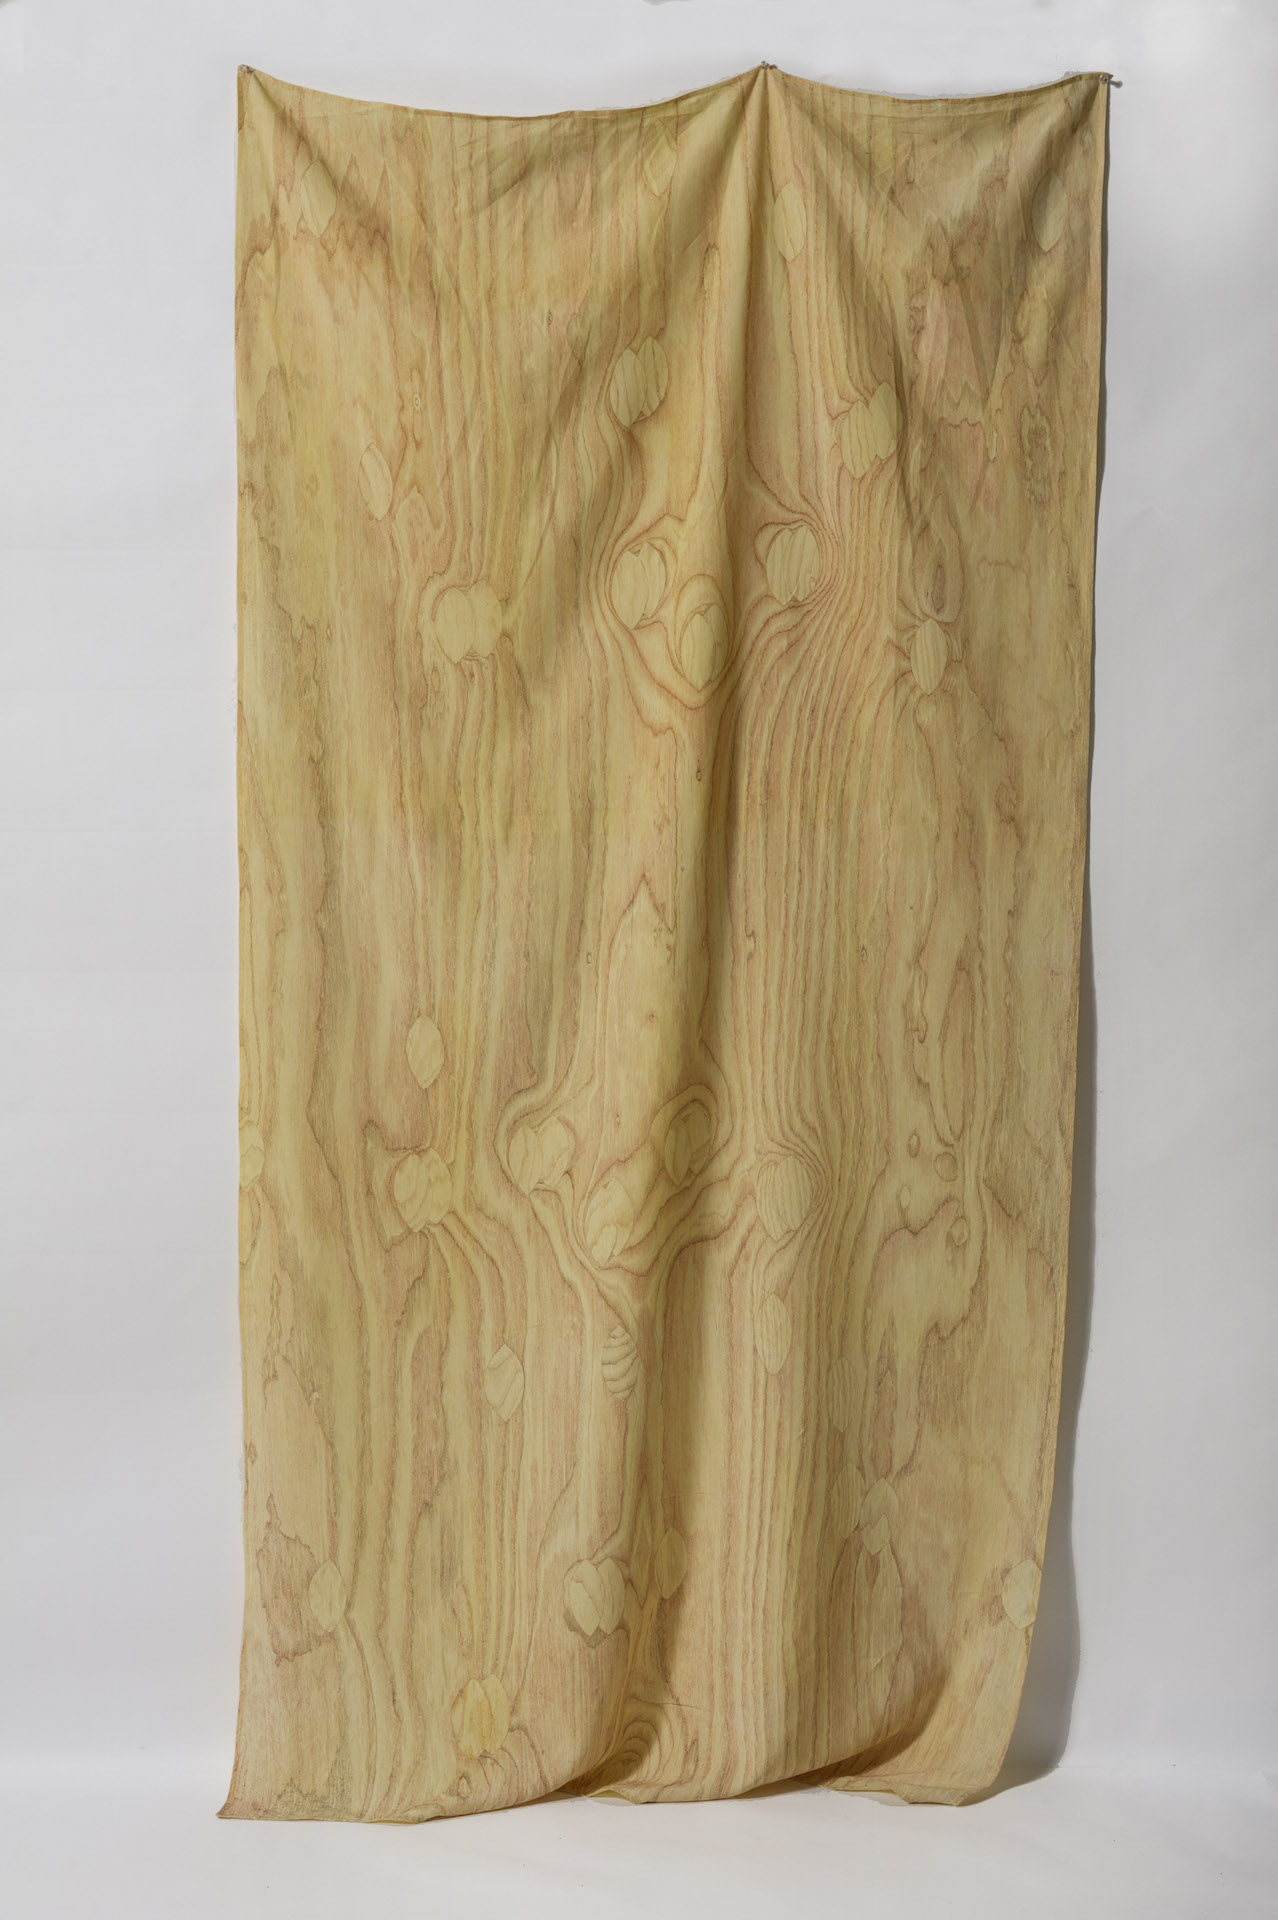 29 Draped Plywood 3 (smaller for site)